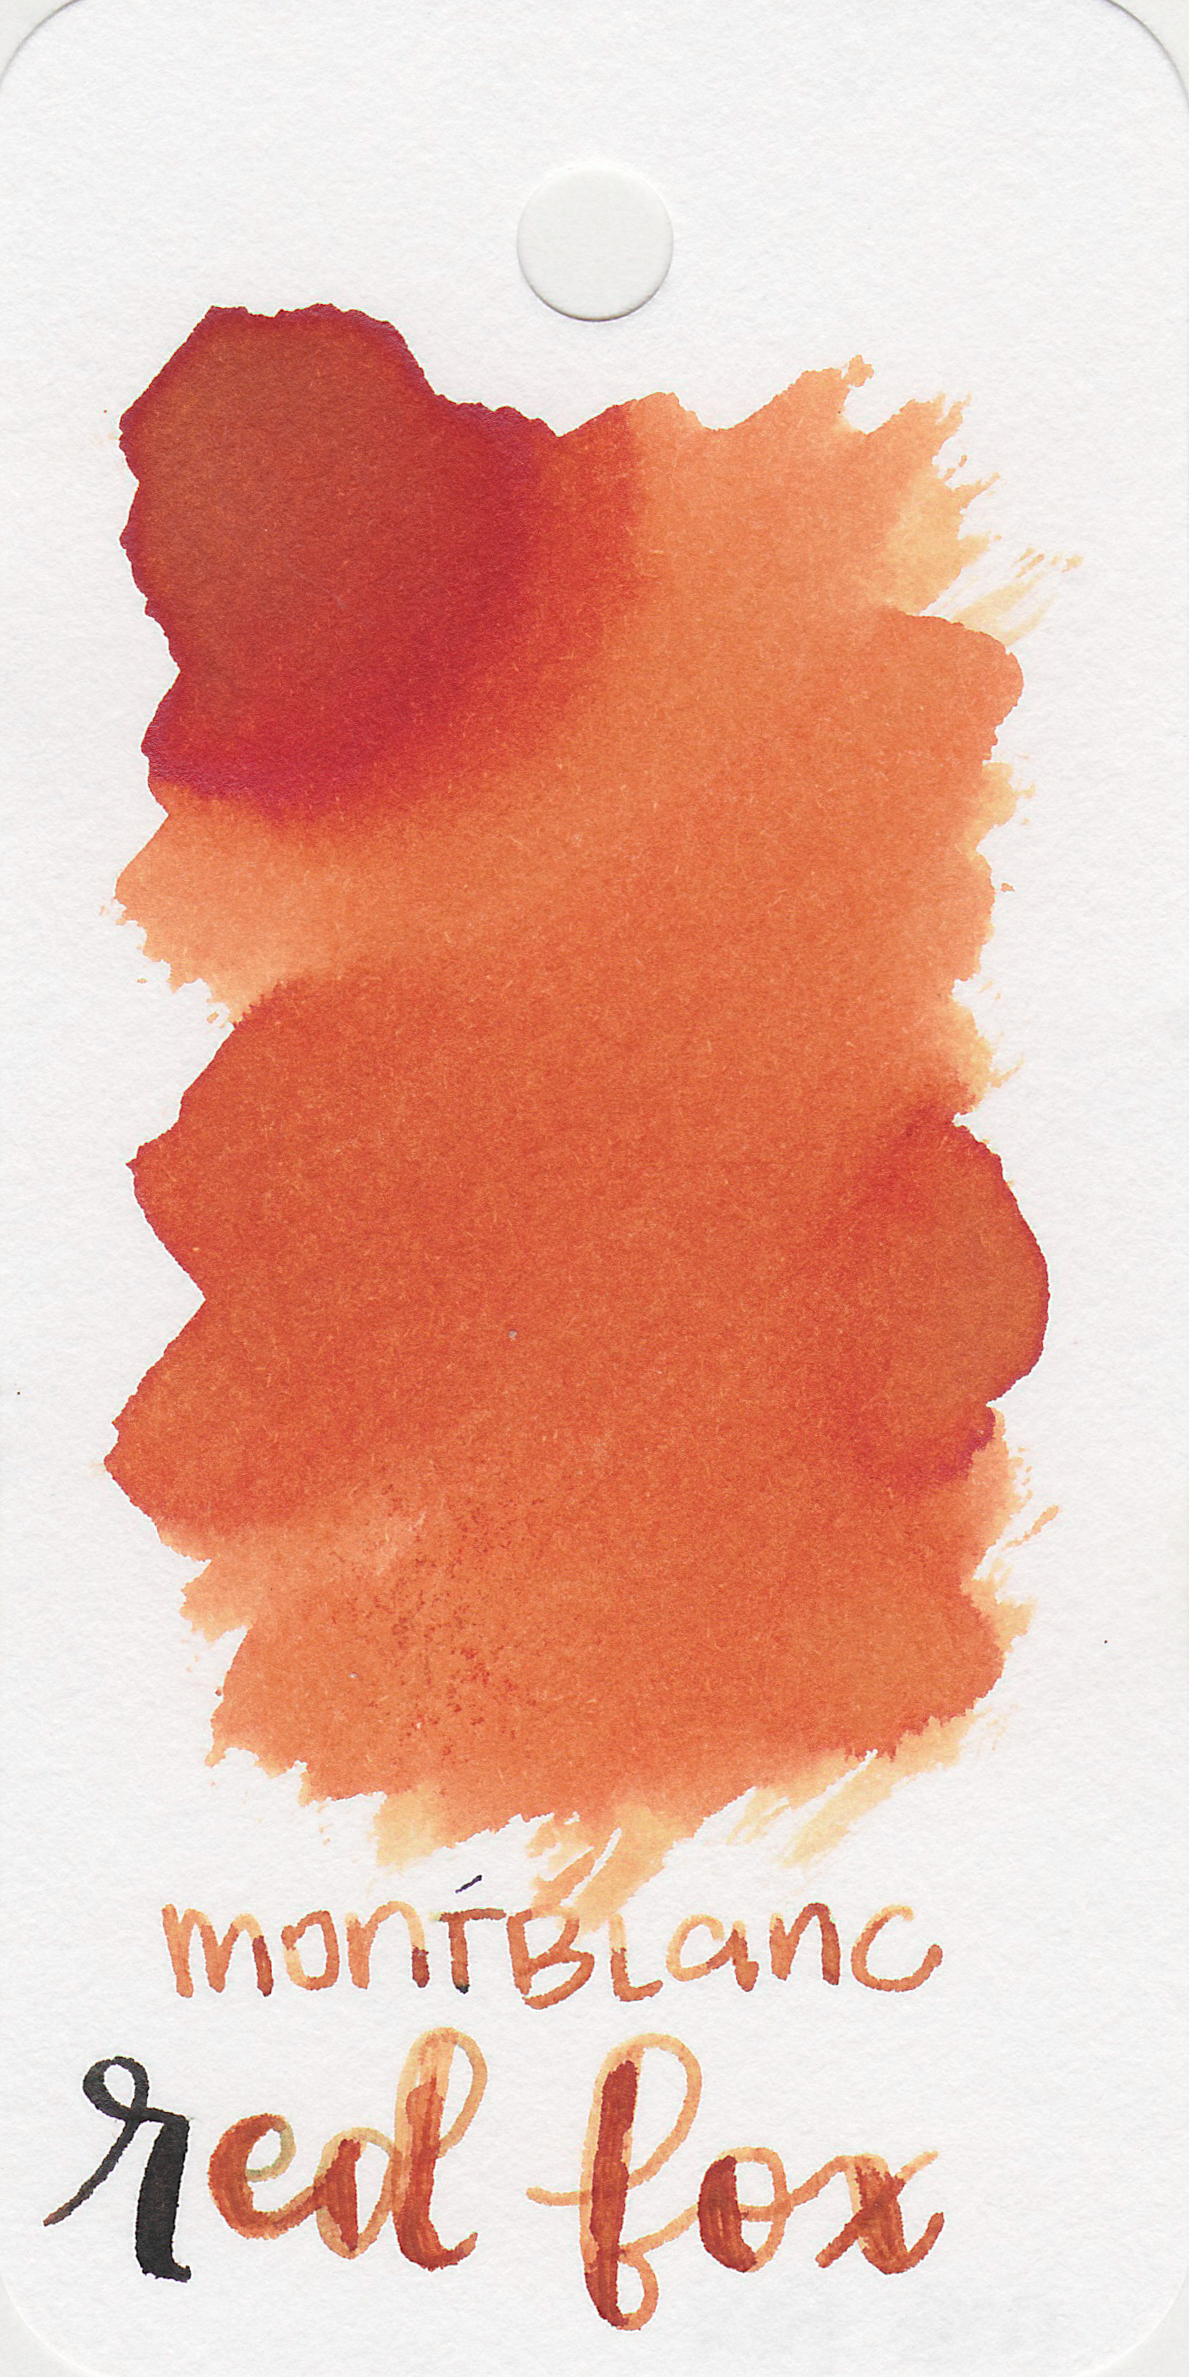 The color: - Red Fox is a red-orange, a bit on the muted side. It does remind me of the color of a fox, so I think the name is fitting.